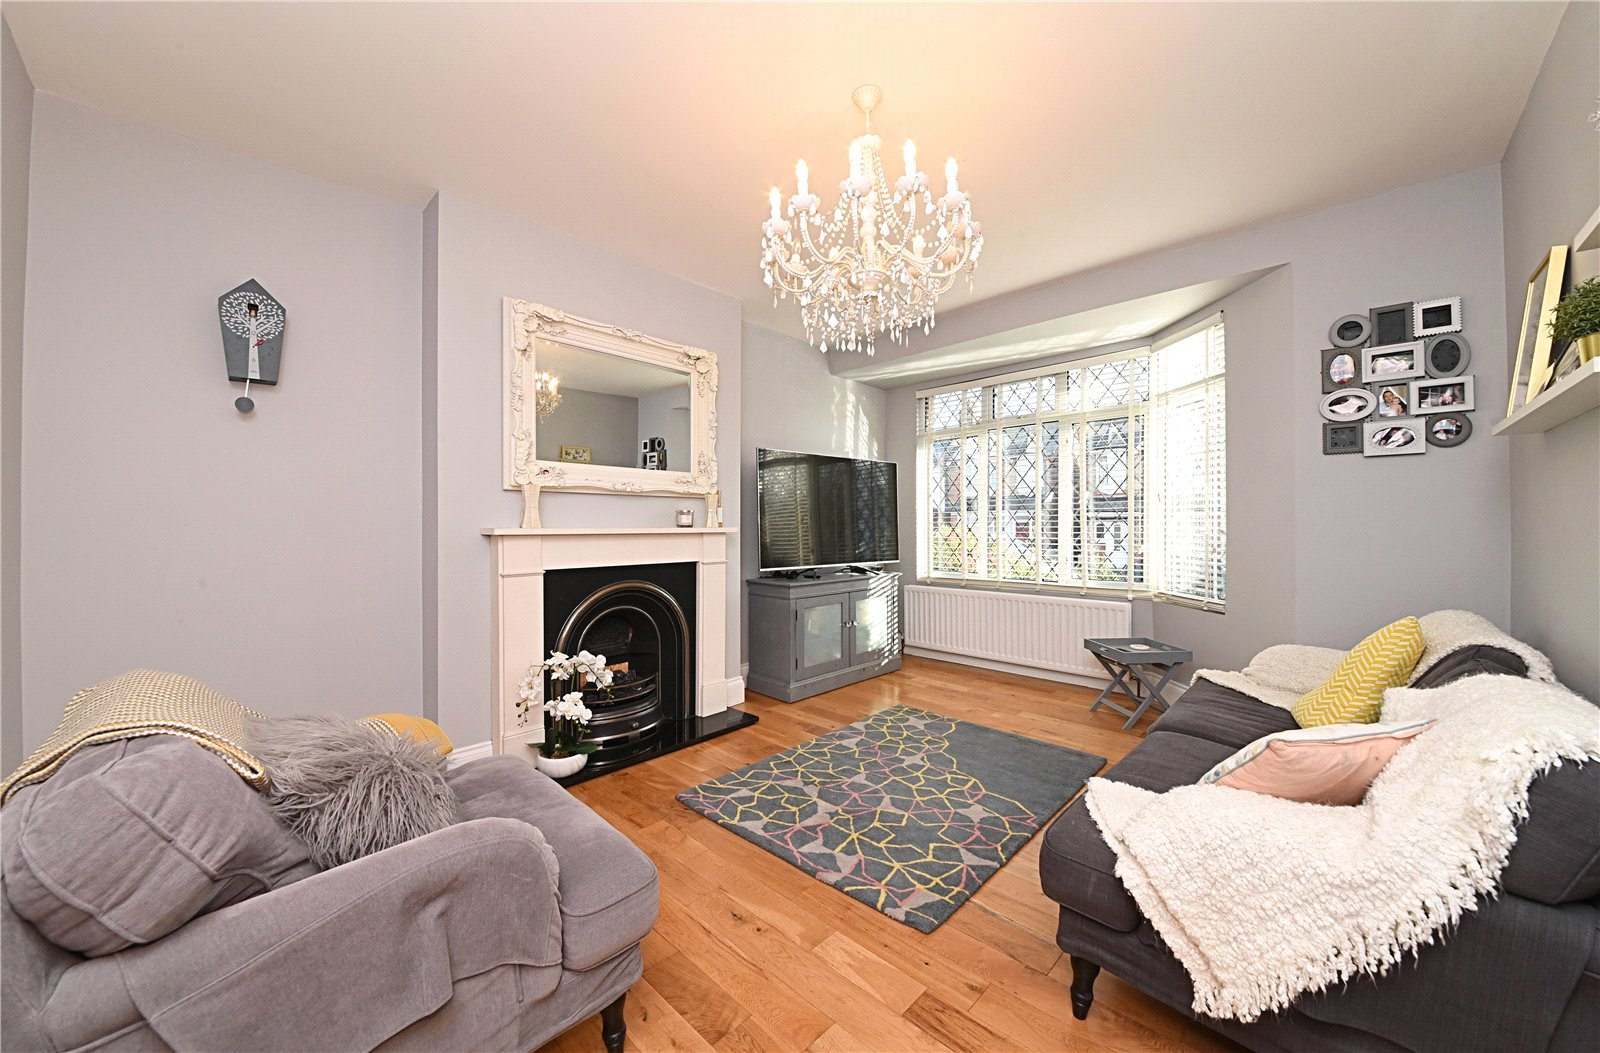 4 bed house for sale in Friern Barnet, N11 1HN 2